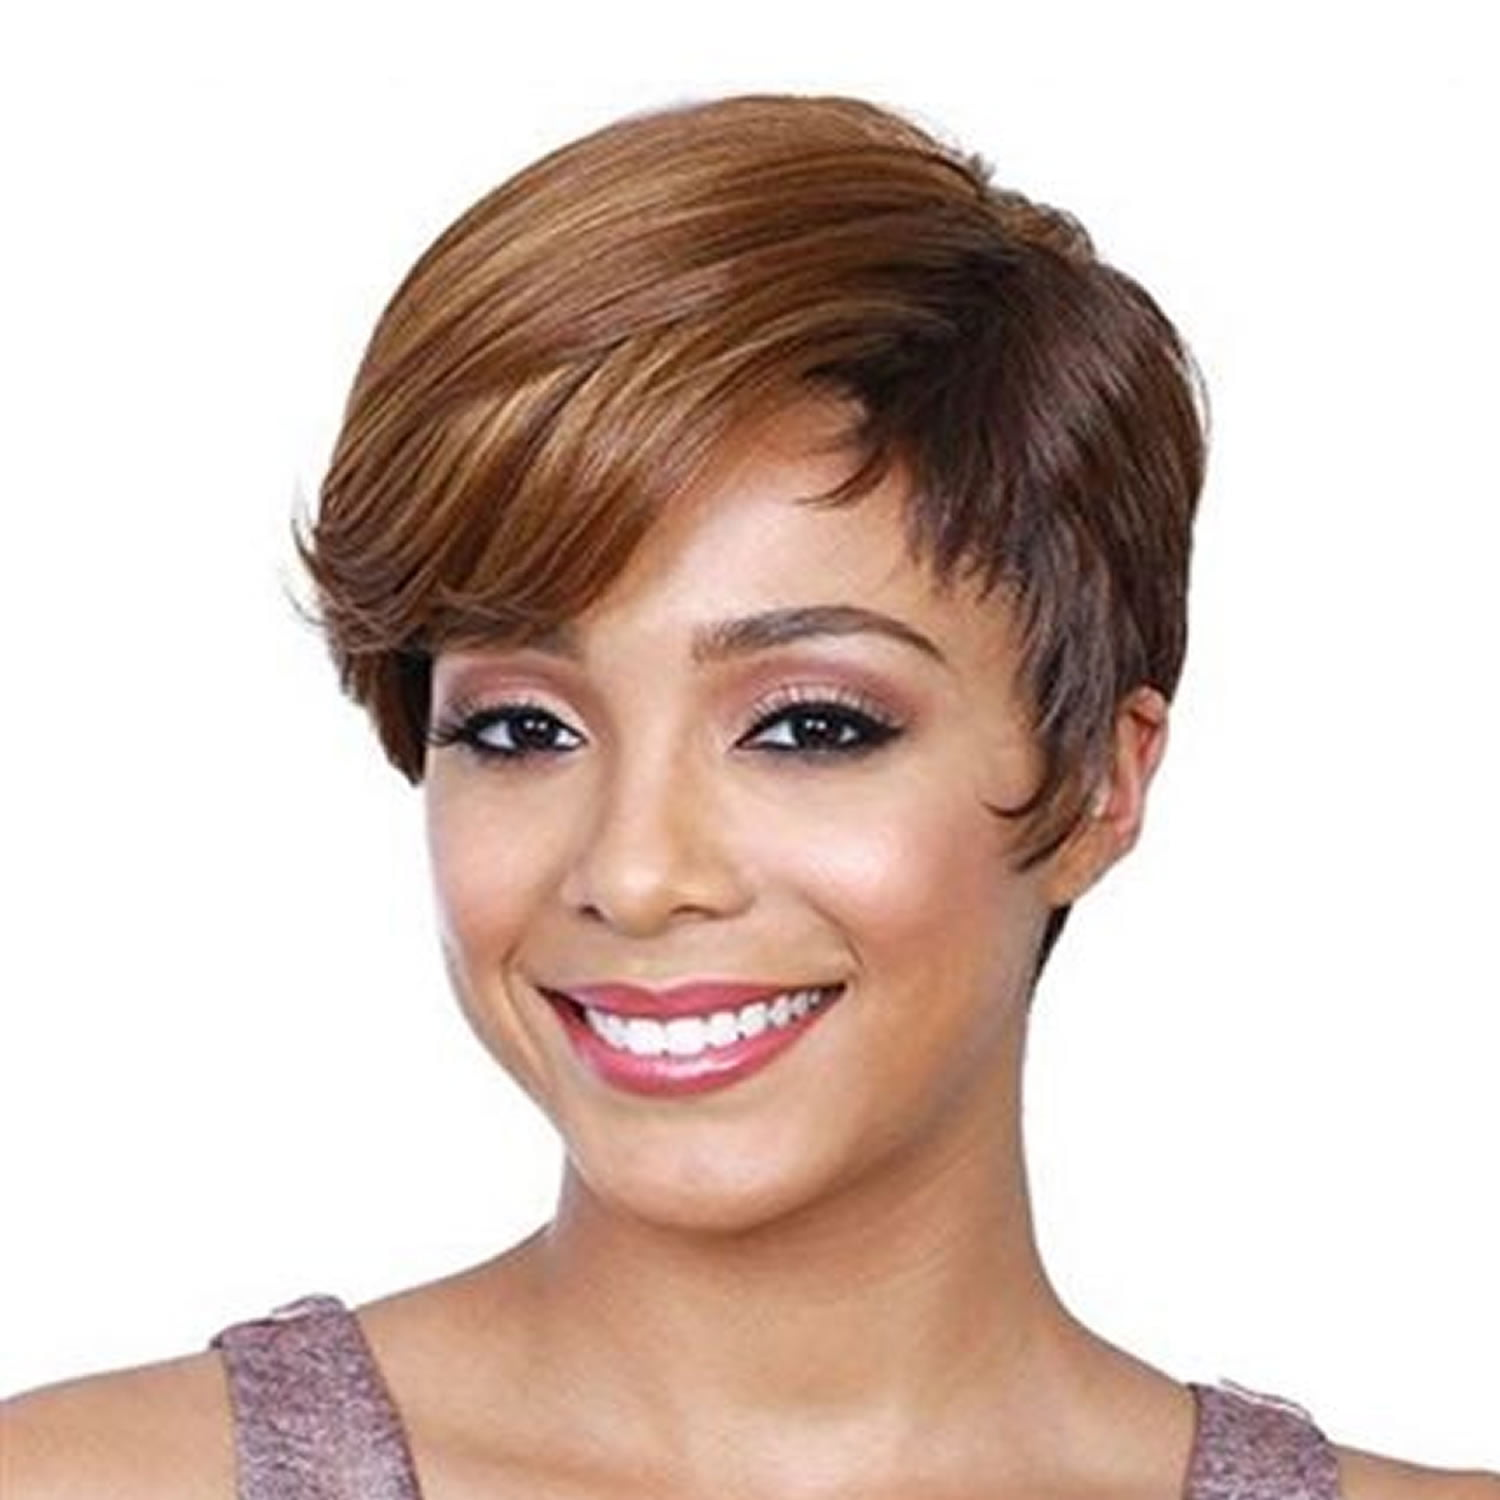 Short Hairstyles For Women In Their 20s With Thick Hair Best Haircuts For Women In Their 20s